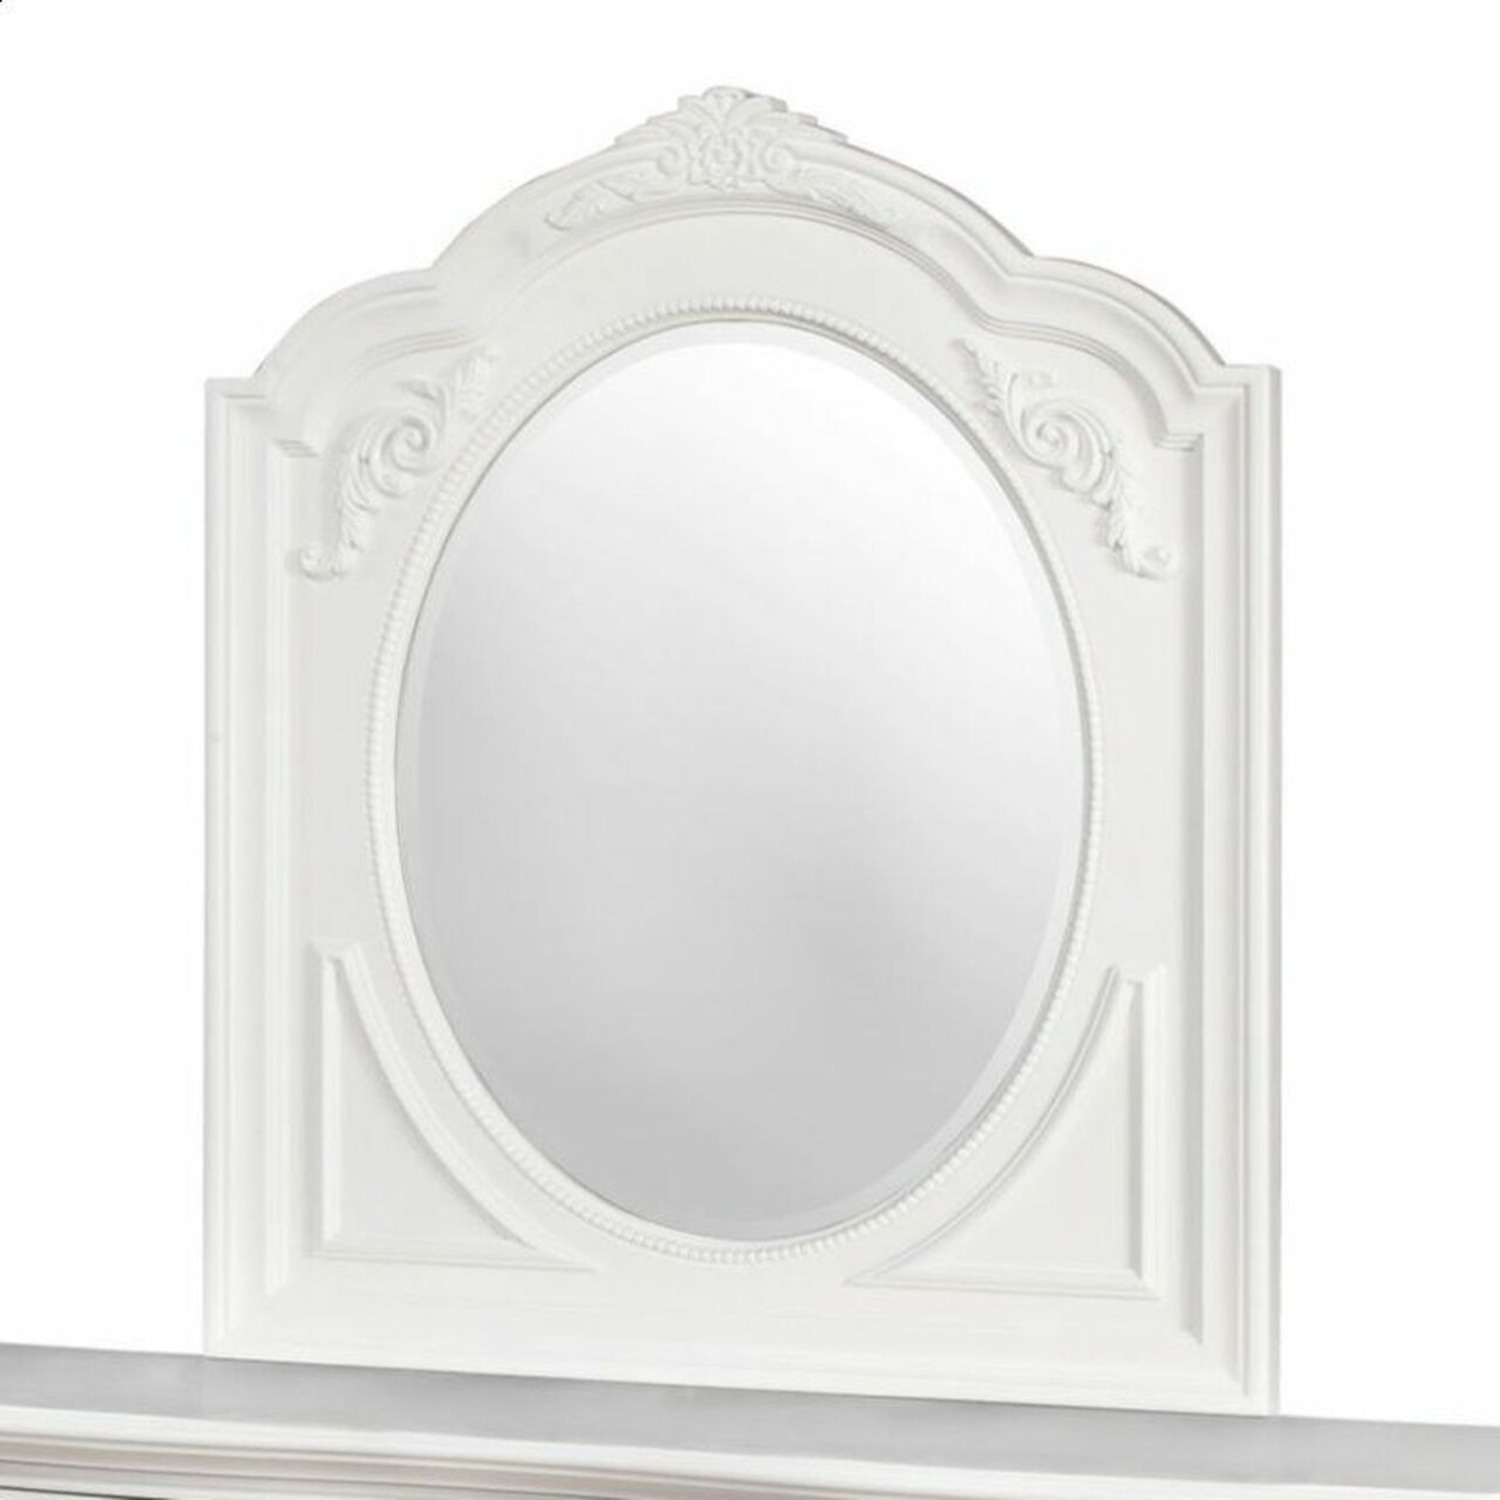 Opulent Style Mirror In White Frame Finish - image-0